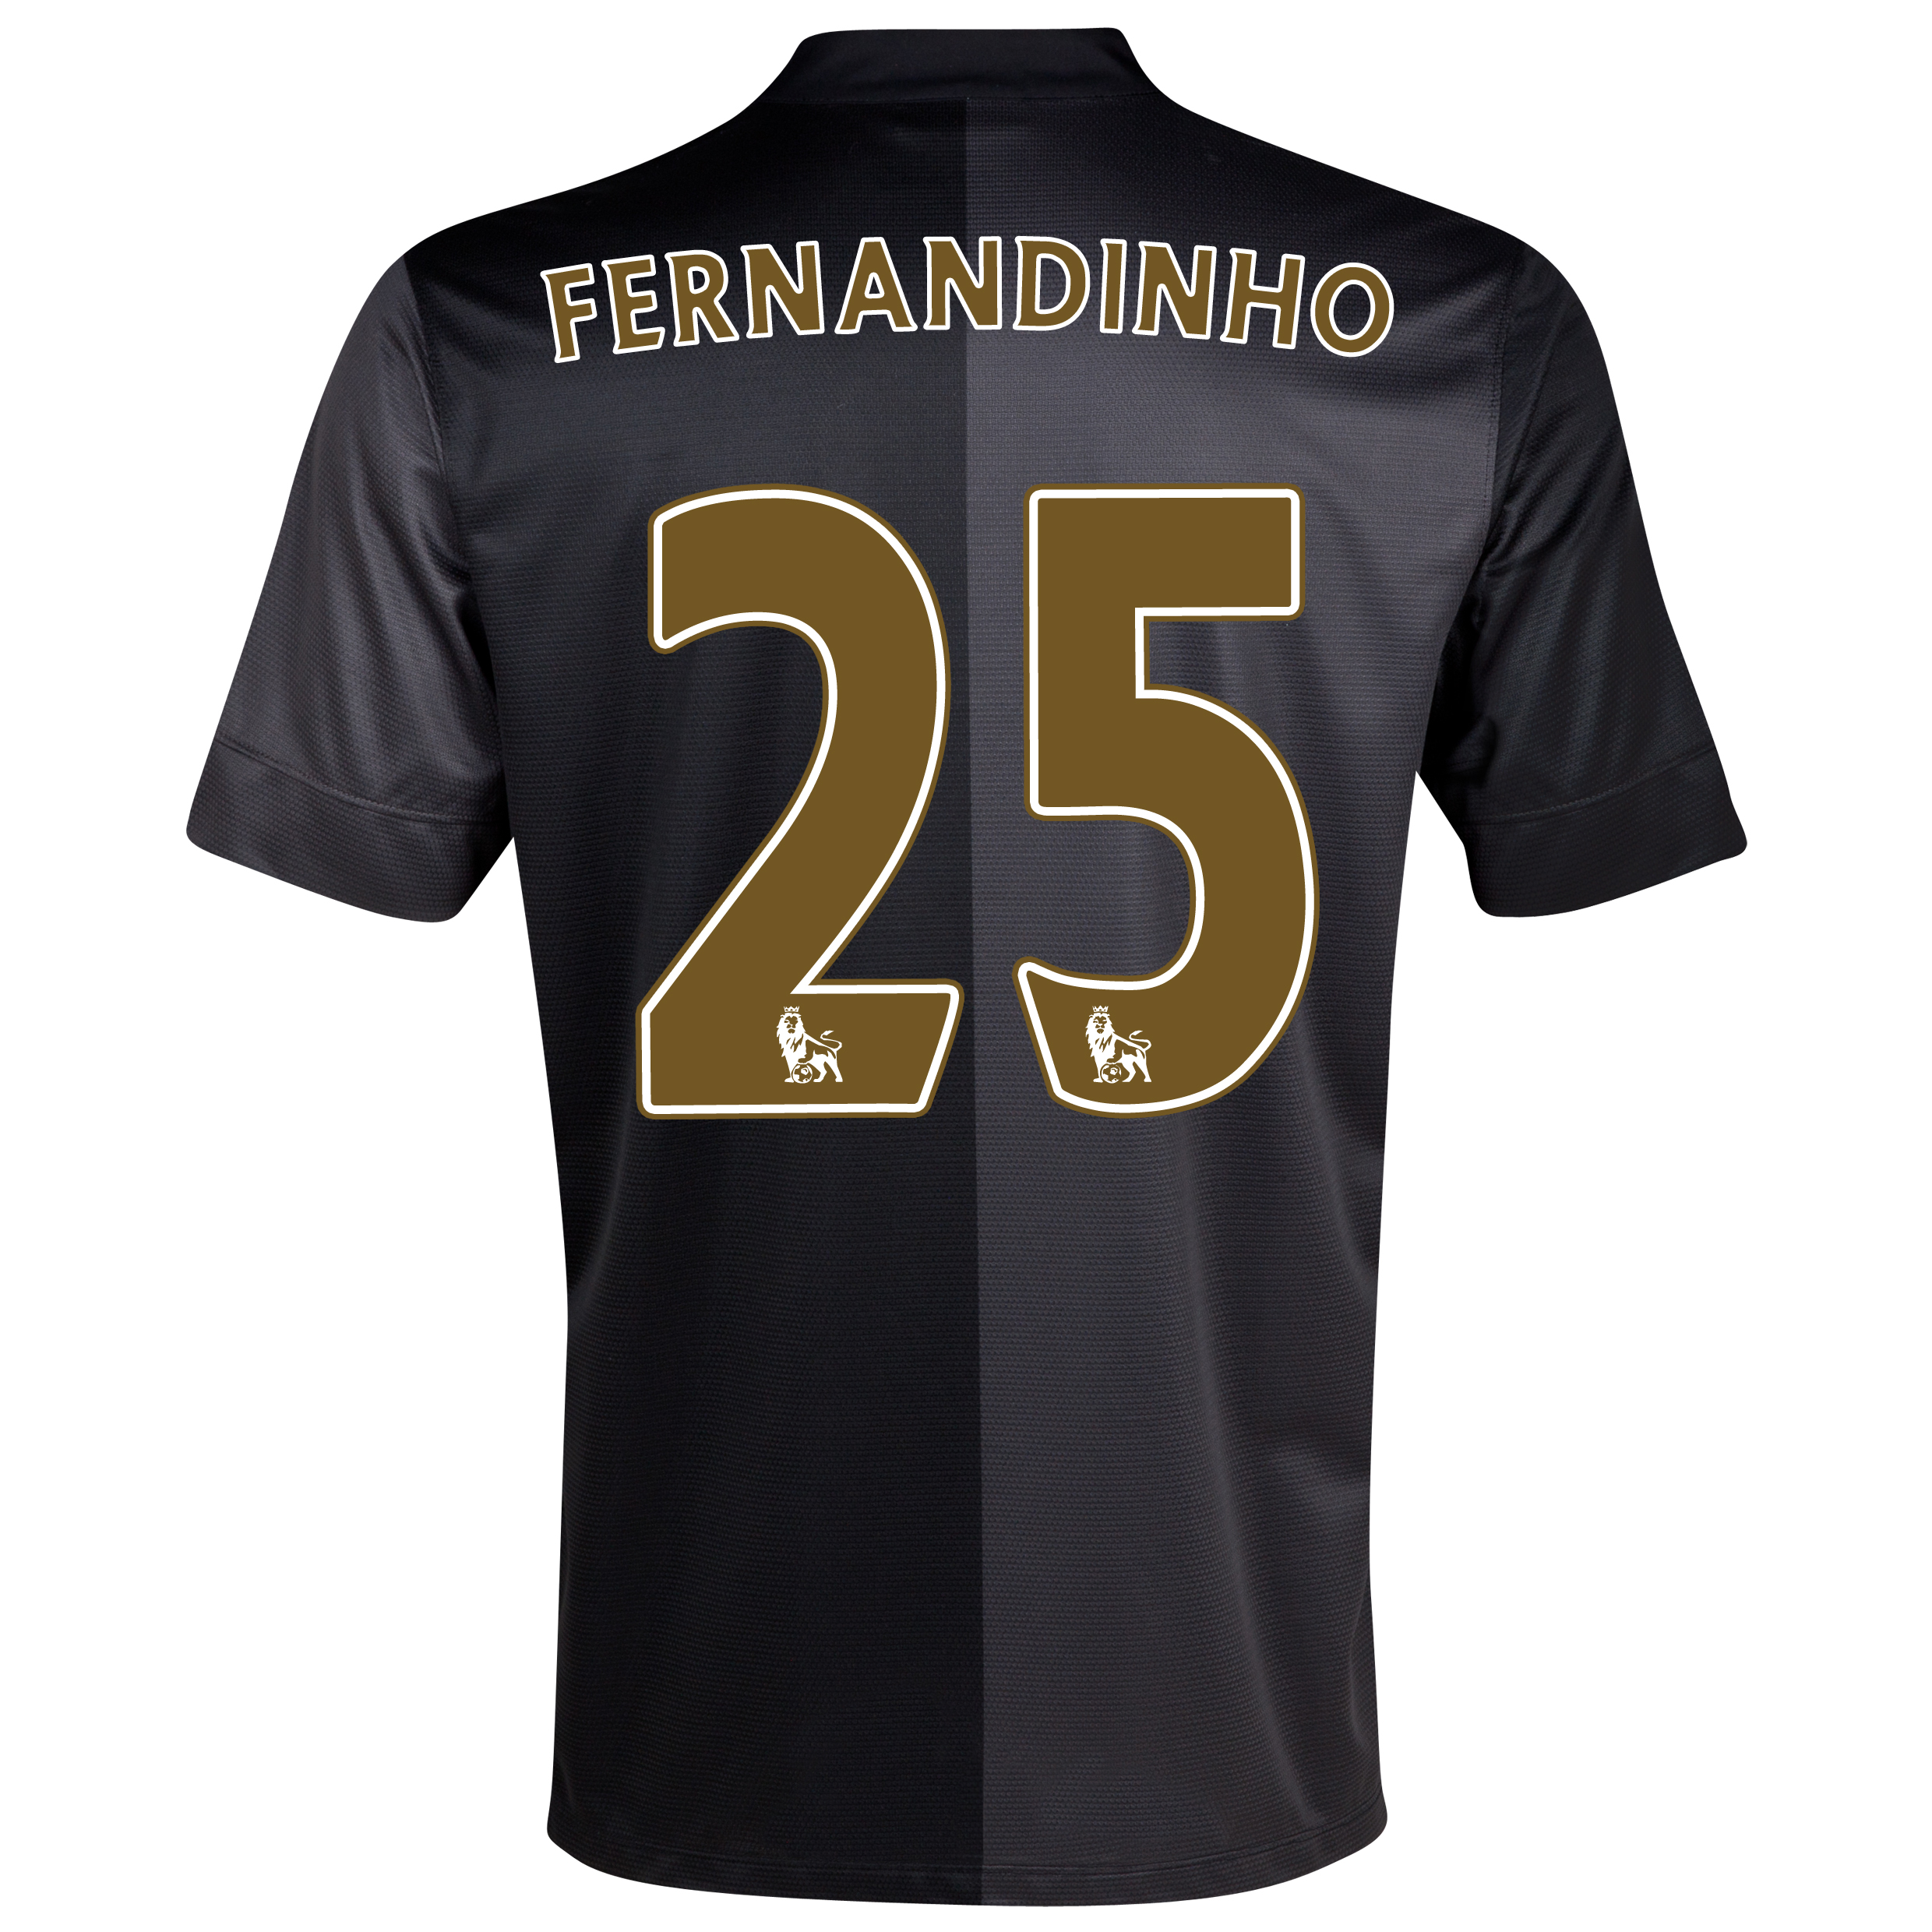 Manchester City Away Shirt 2013/14 with Fernandinho 25 printing